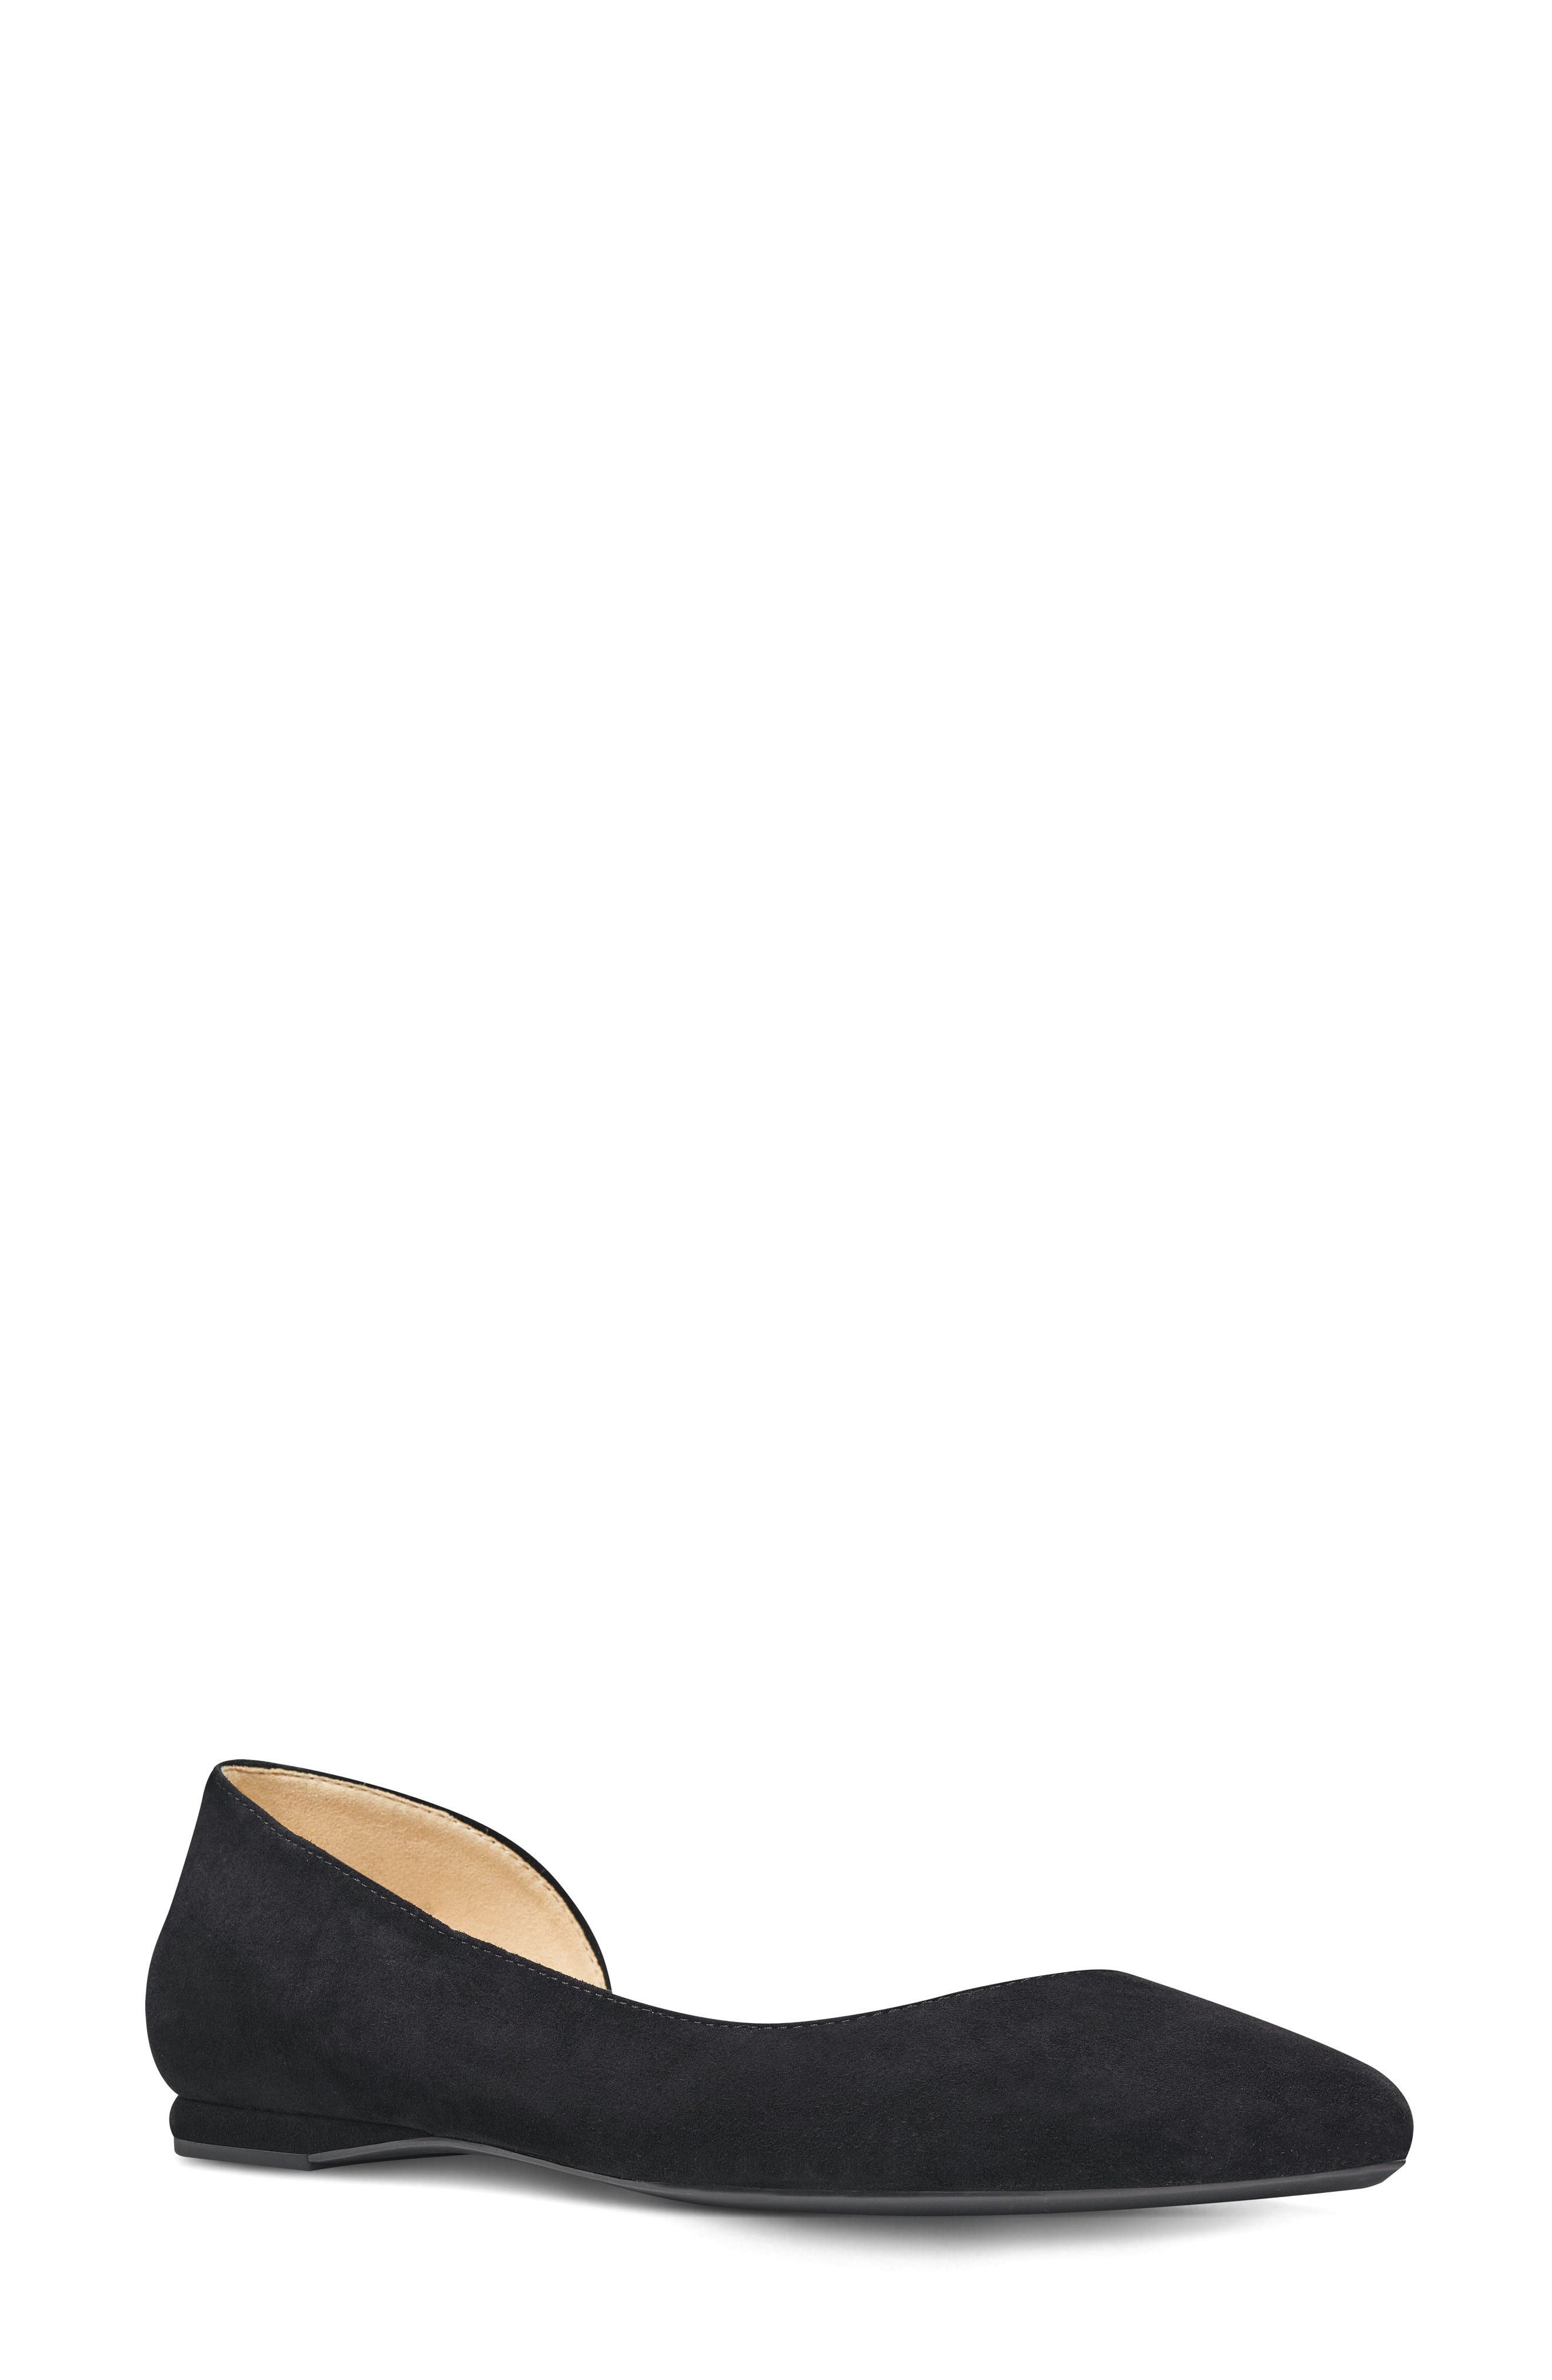 Spruce d'Orsay Flat,                         Main,                         color, Black Suede